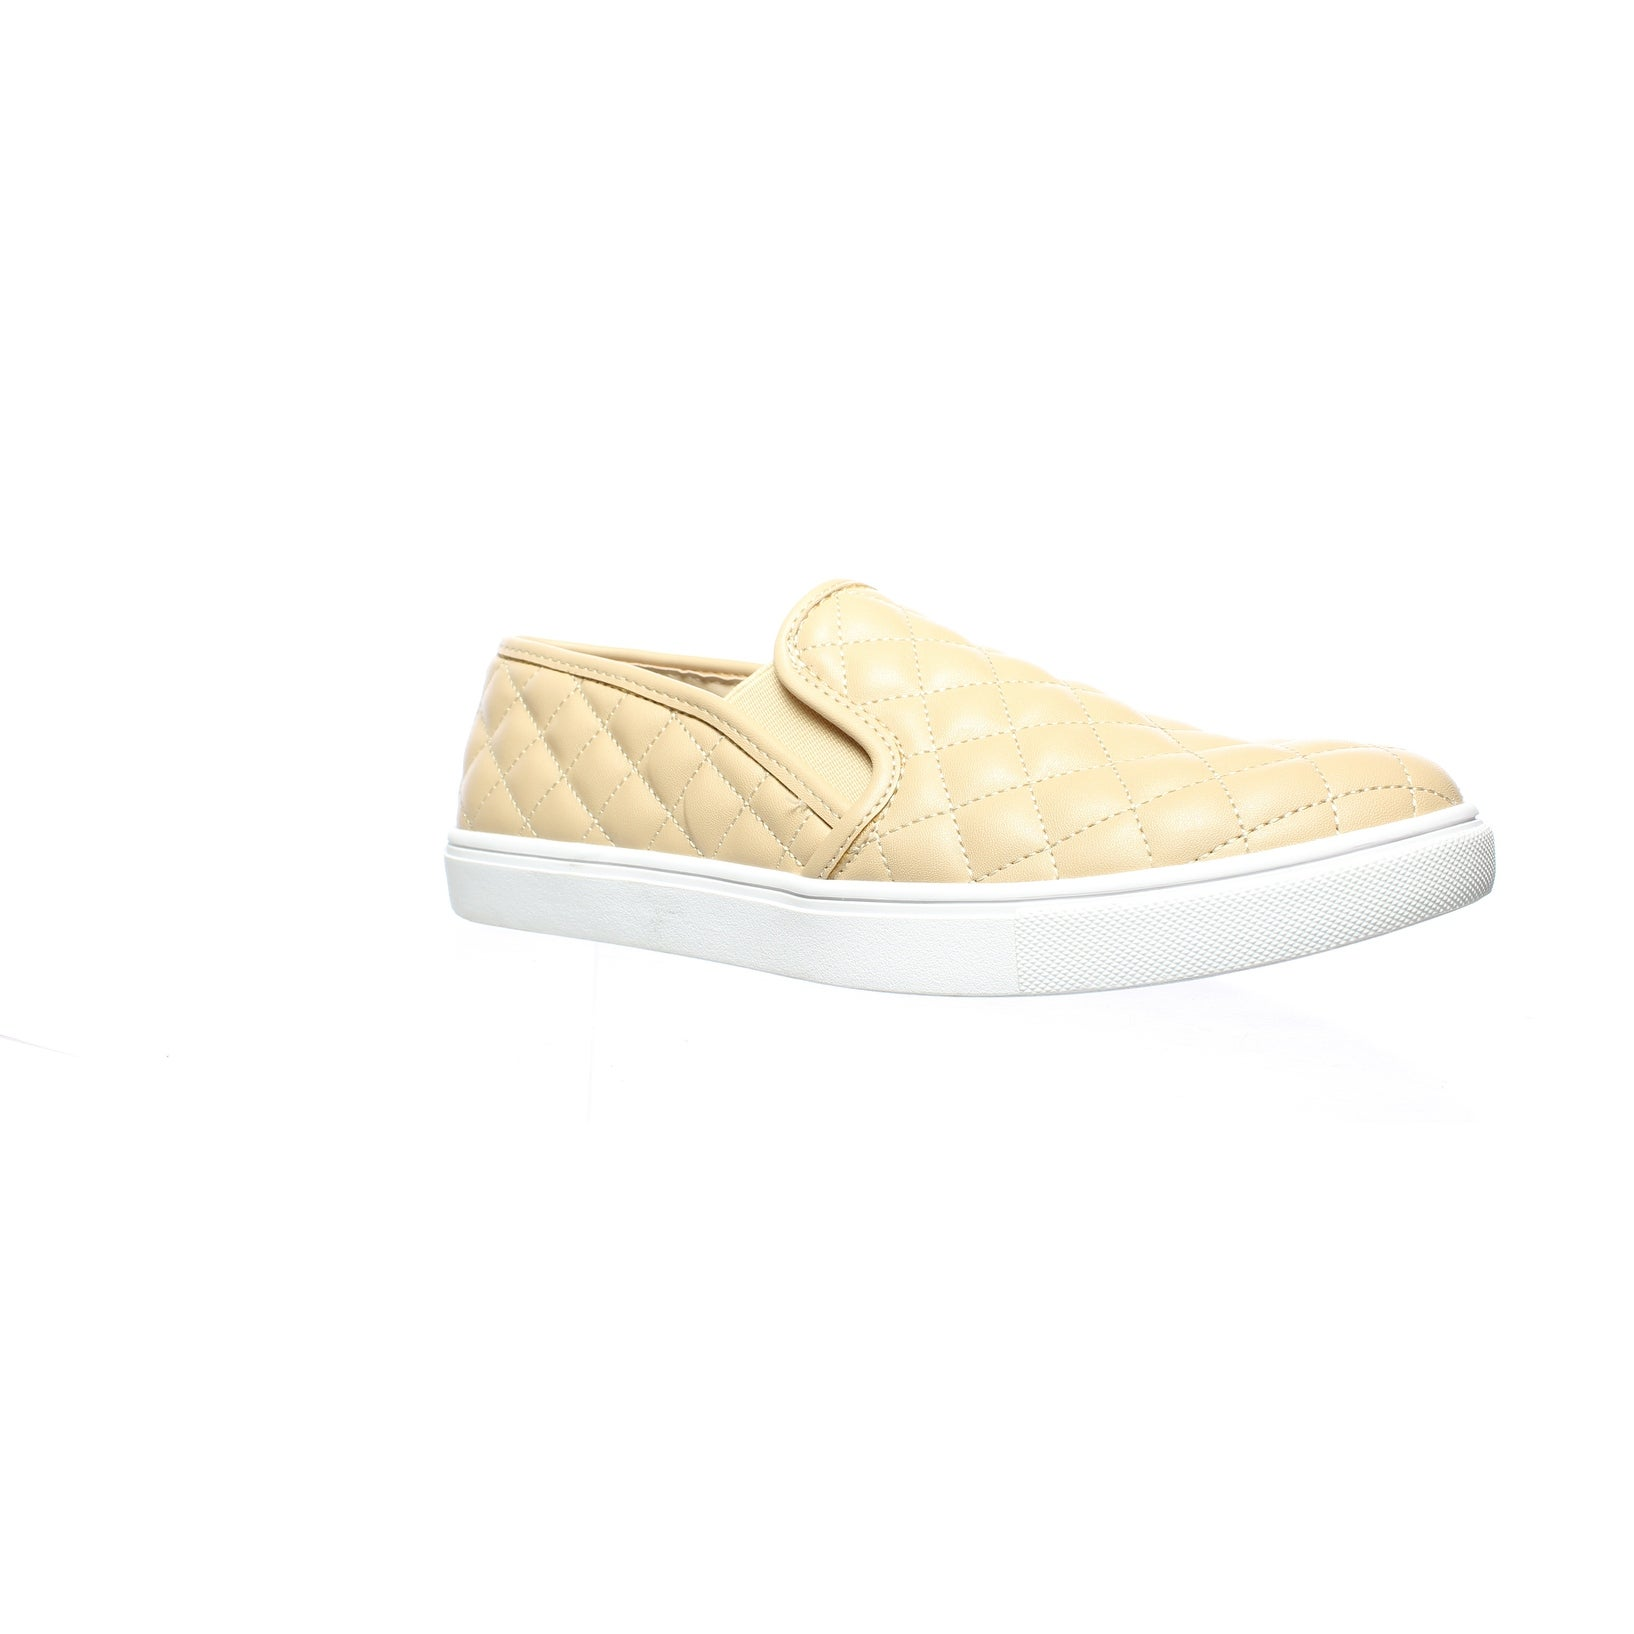 125fd6d7712 Buy Steve Madden Women s Athletic Shoes Online at Overstock